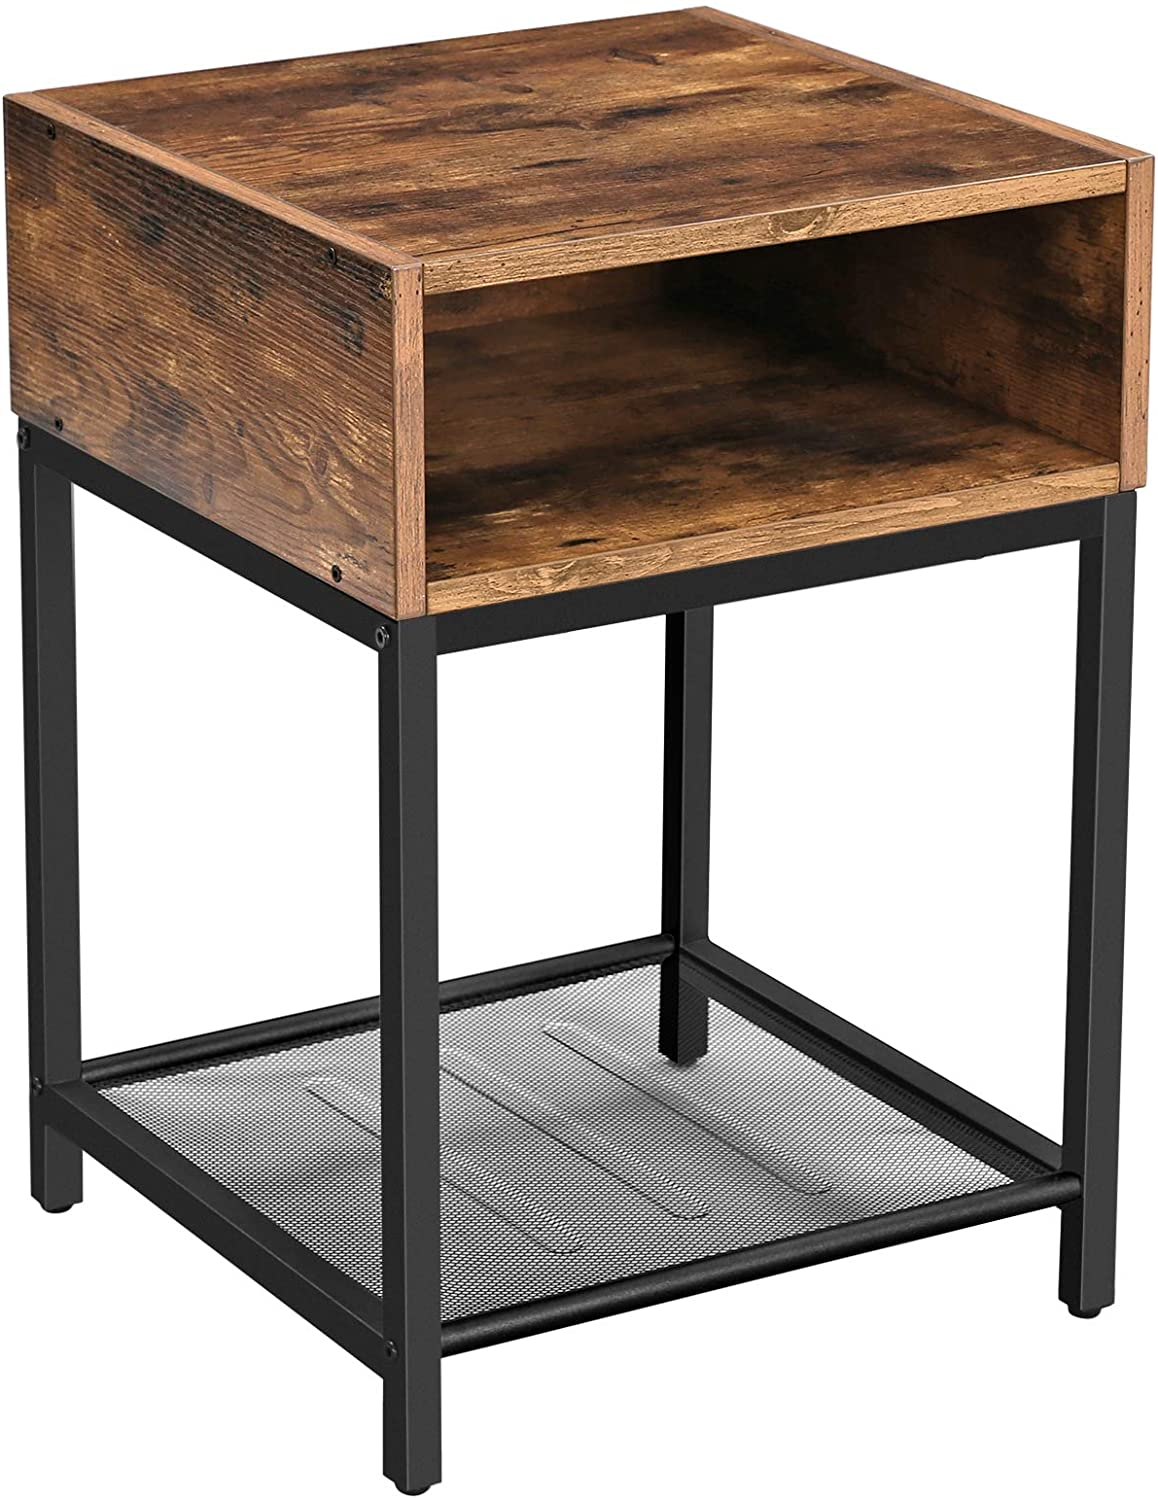 Enjoy fast, free nationwide shipping!  Family owned and operated, HawkinsWoodshop.com is your one stop shop for affordable furniture.  Shop HawkinsWoodshop.com for solid wood & metal modern, traditional, contemporary, industrial, custom, rustic, and farmhouse furniture including our Ryan Open Drawer w/ Mesh Shelf Industrial Nightstand End Table.